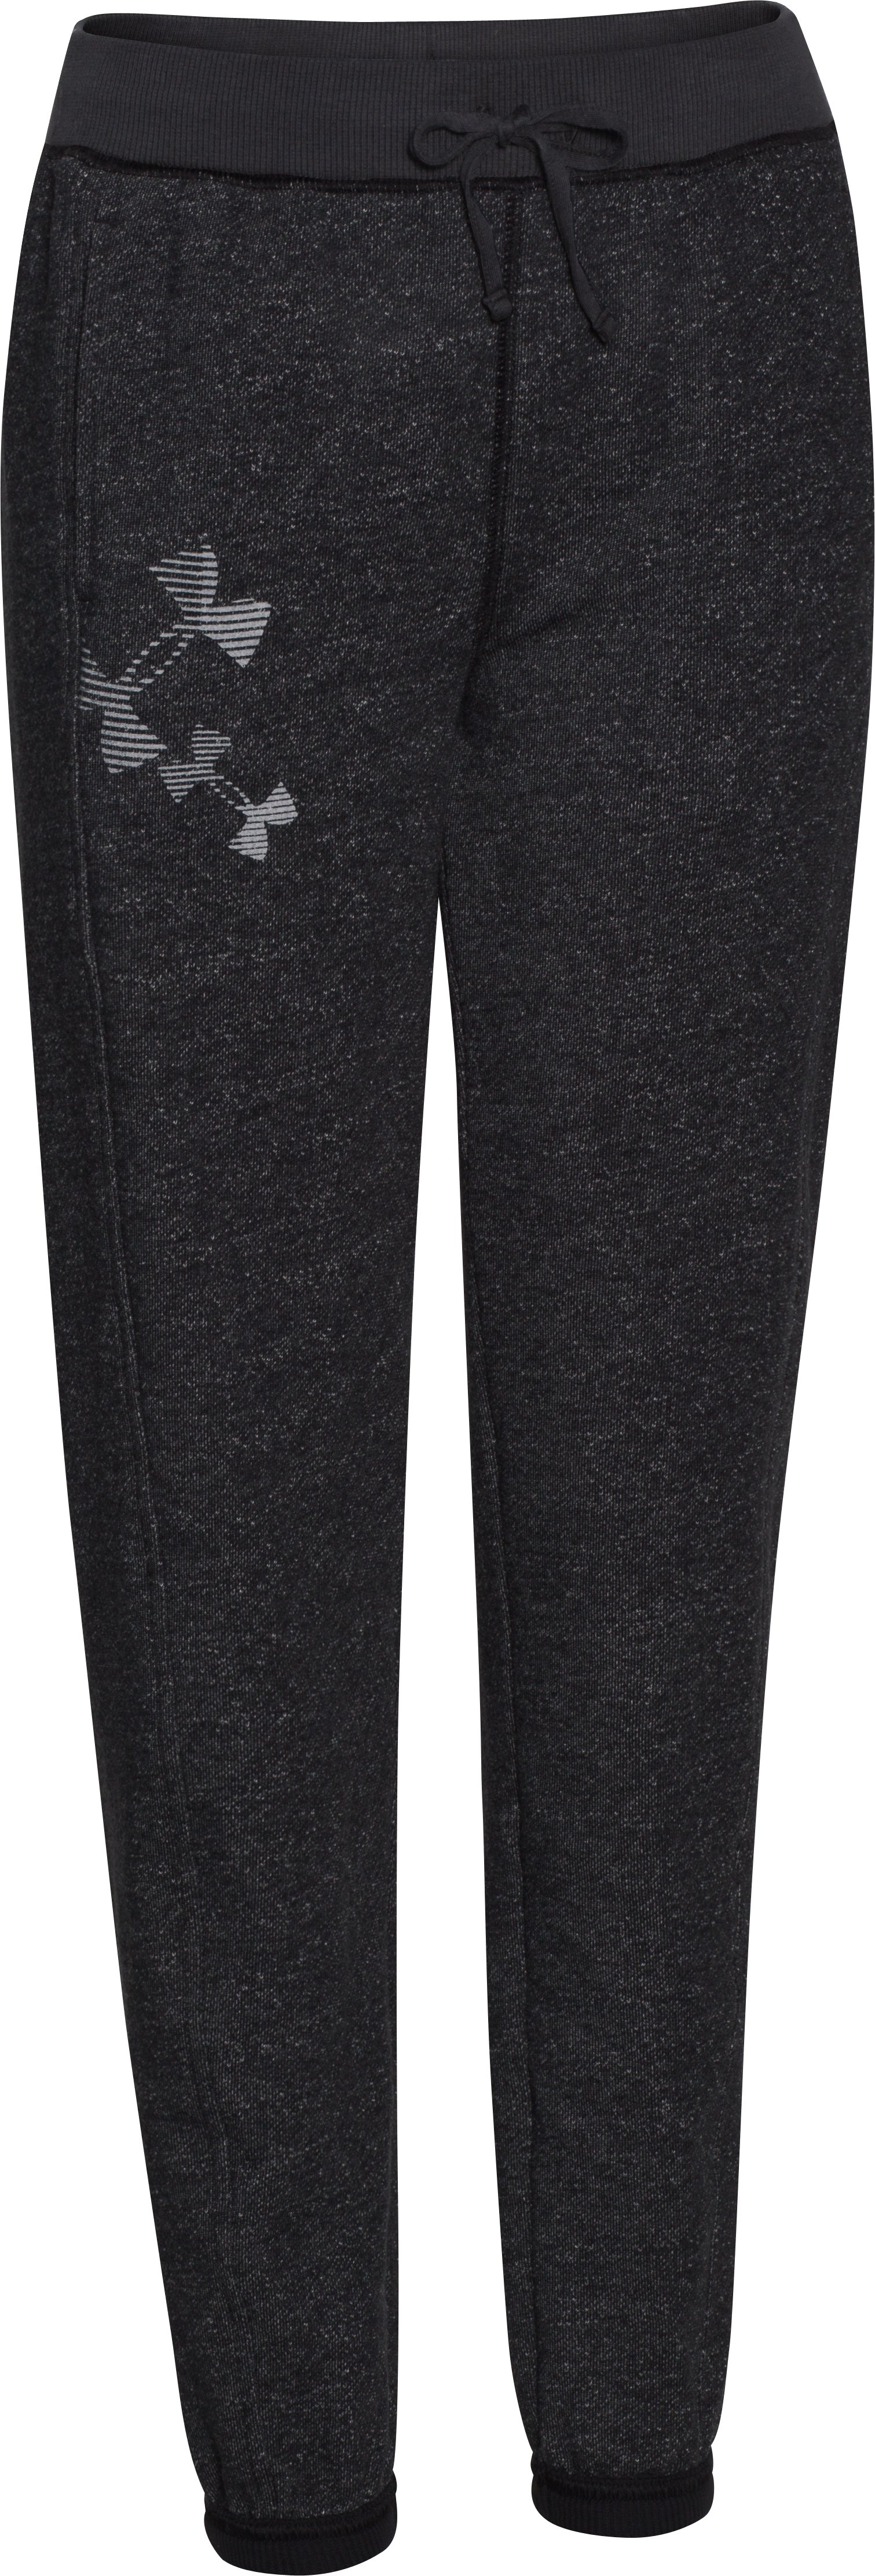 Girls' UA Kaleidalogo Pant, Black